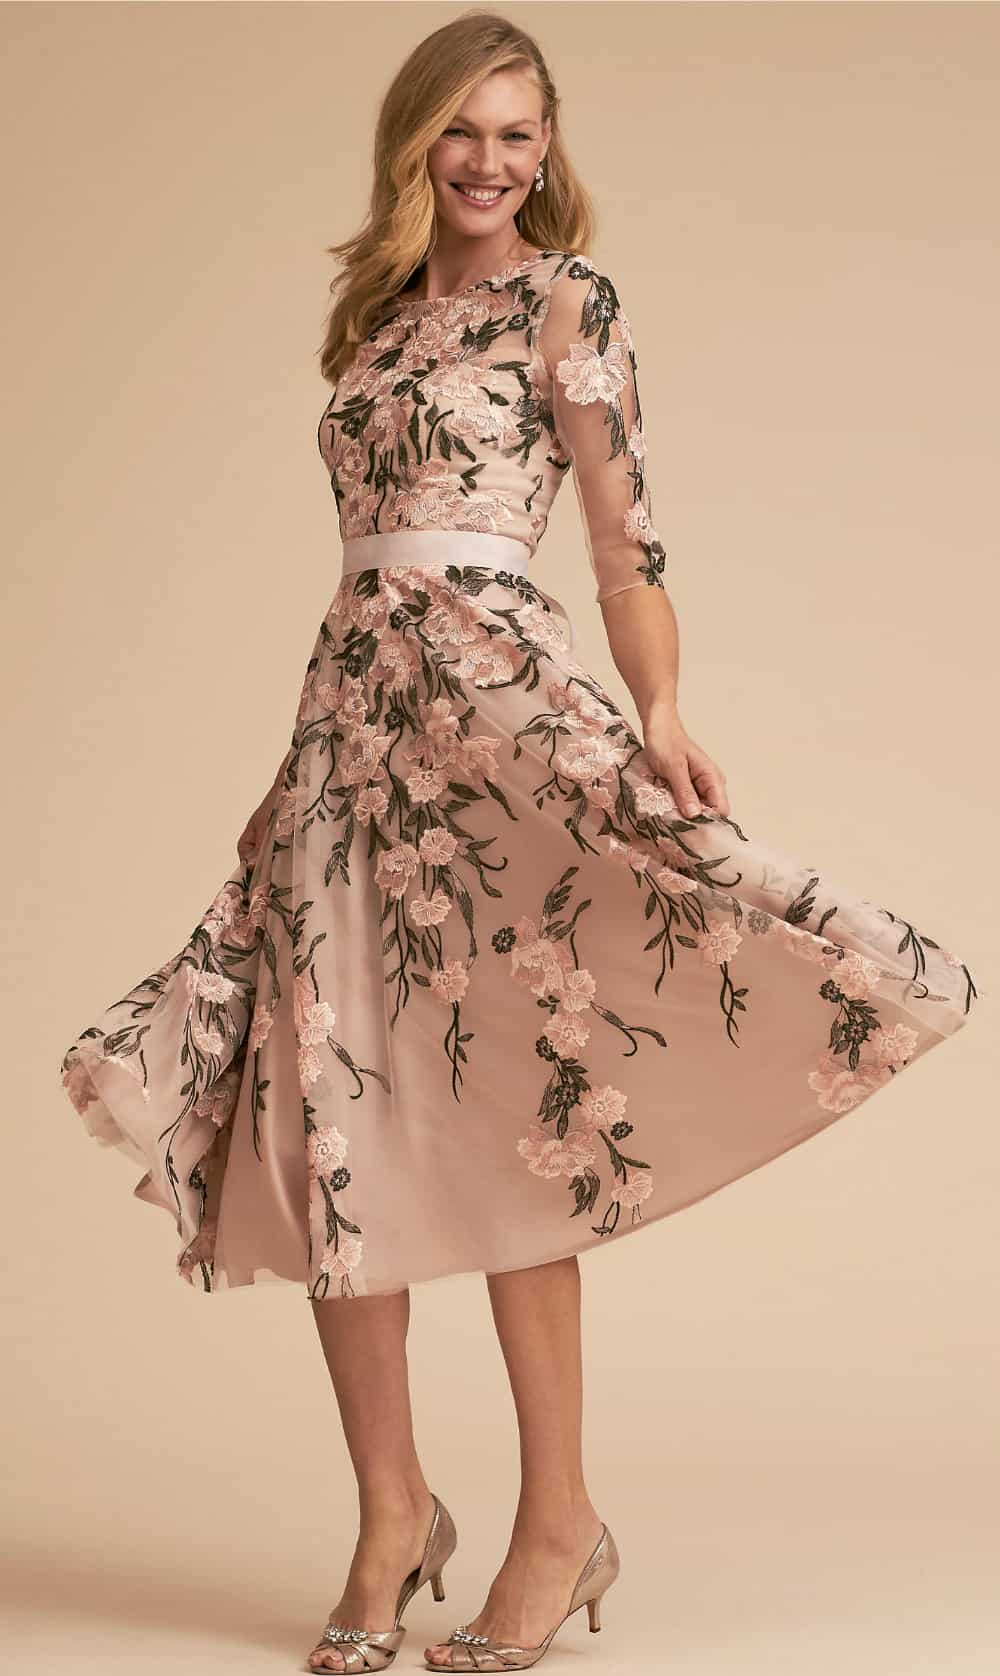 Floral Mother of the Bride Dresses | Dress for the Wedding